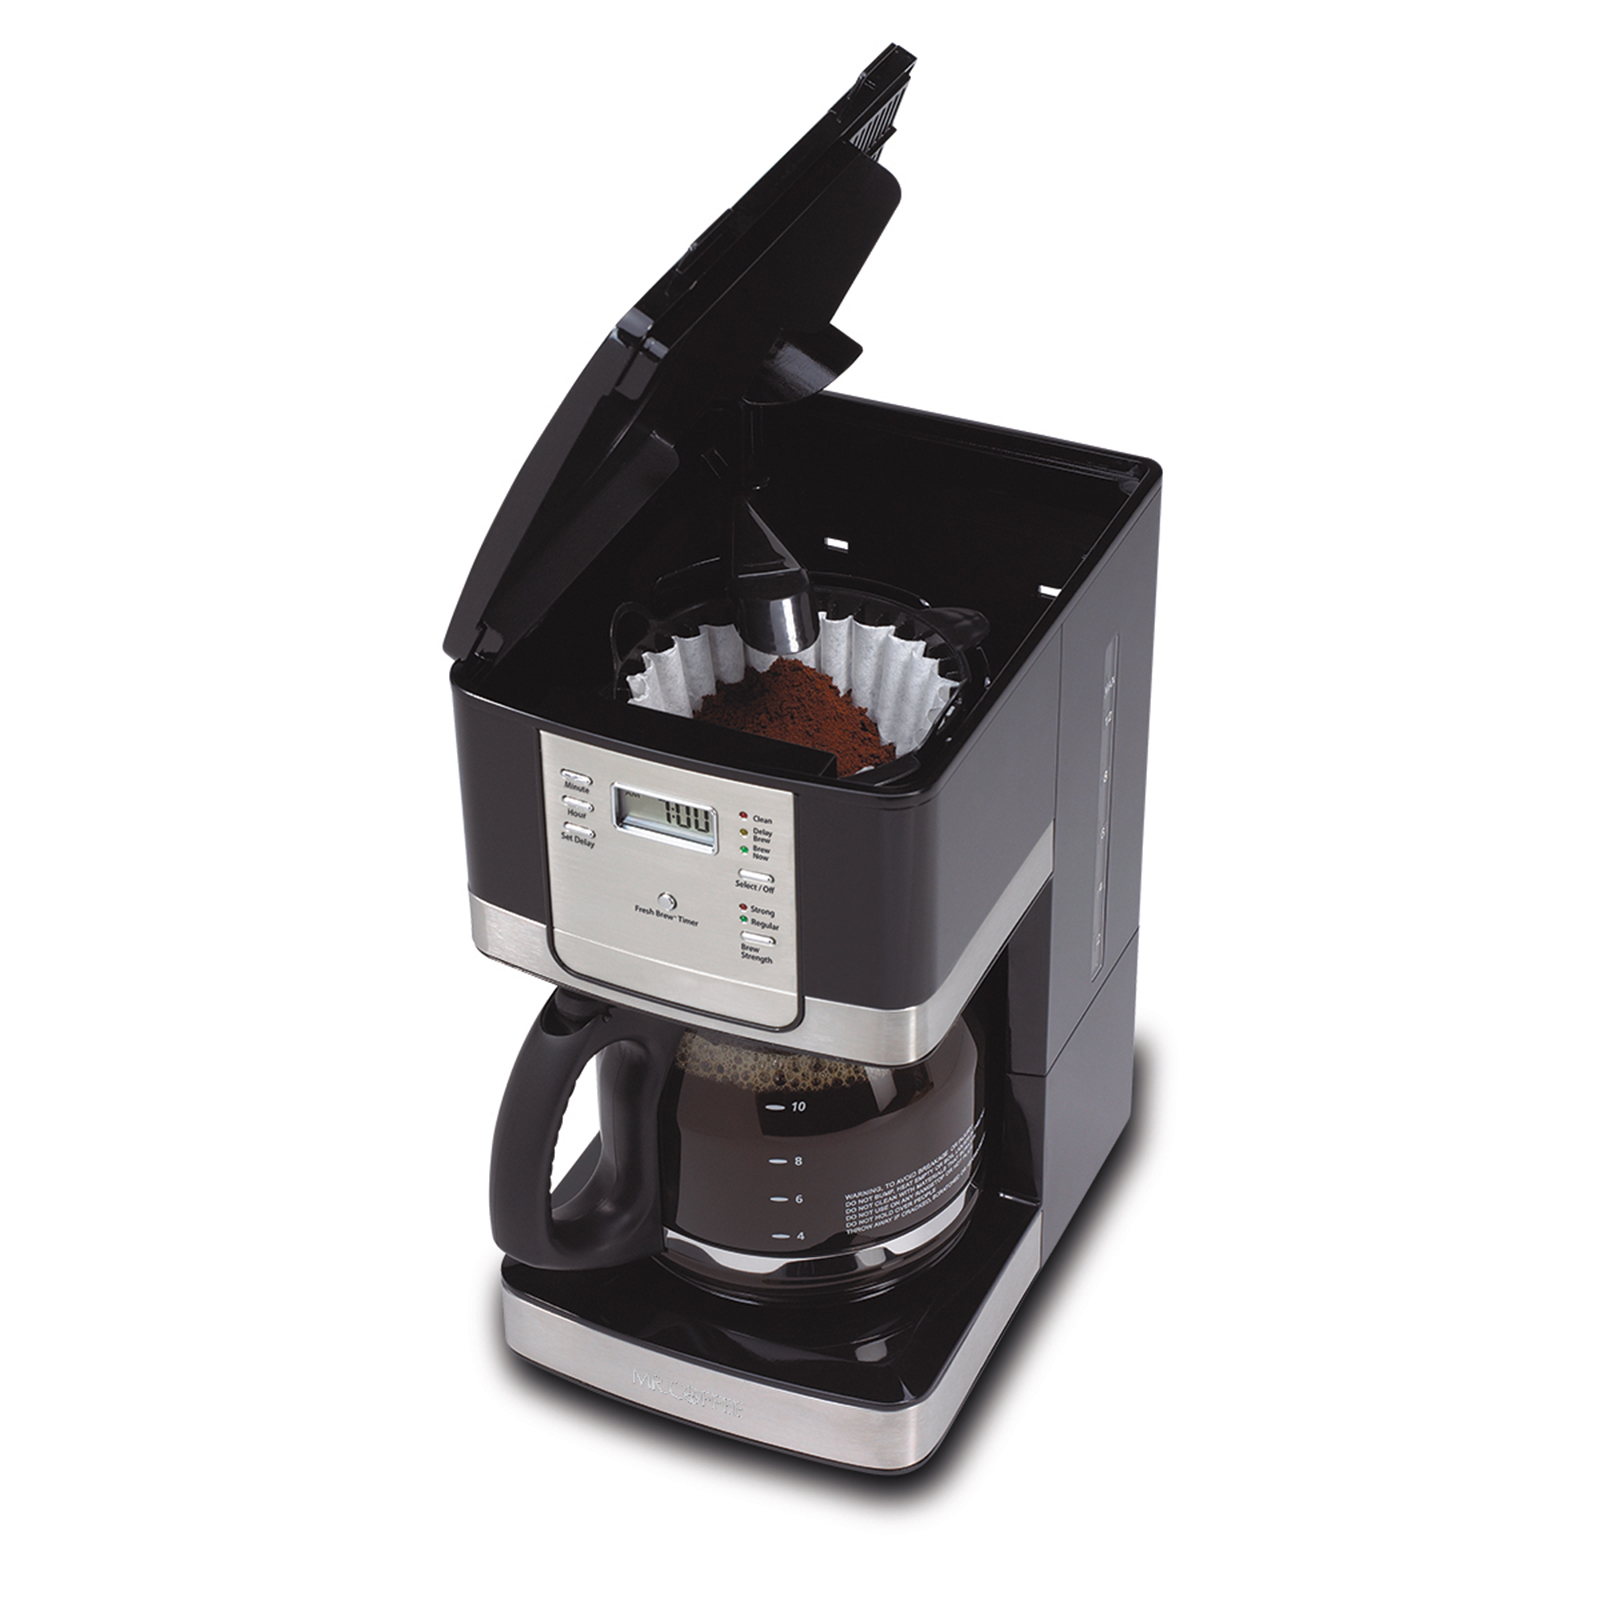 Mr. Coffee 12-Cup Programmable Coffee Maker - Stainless Steel/Black